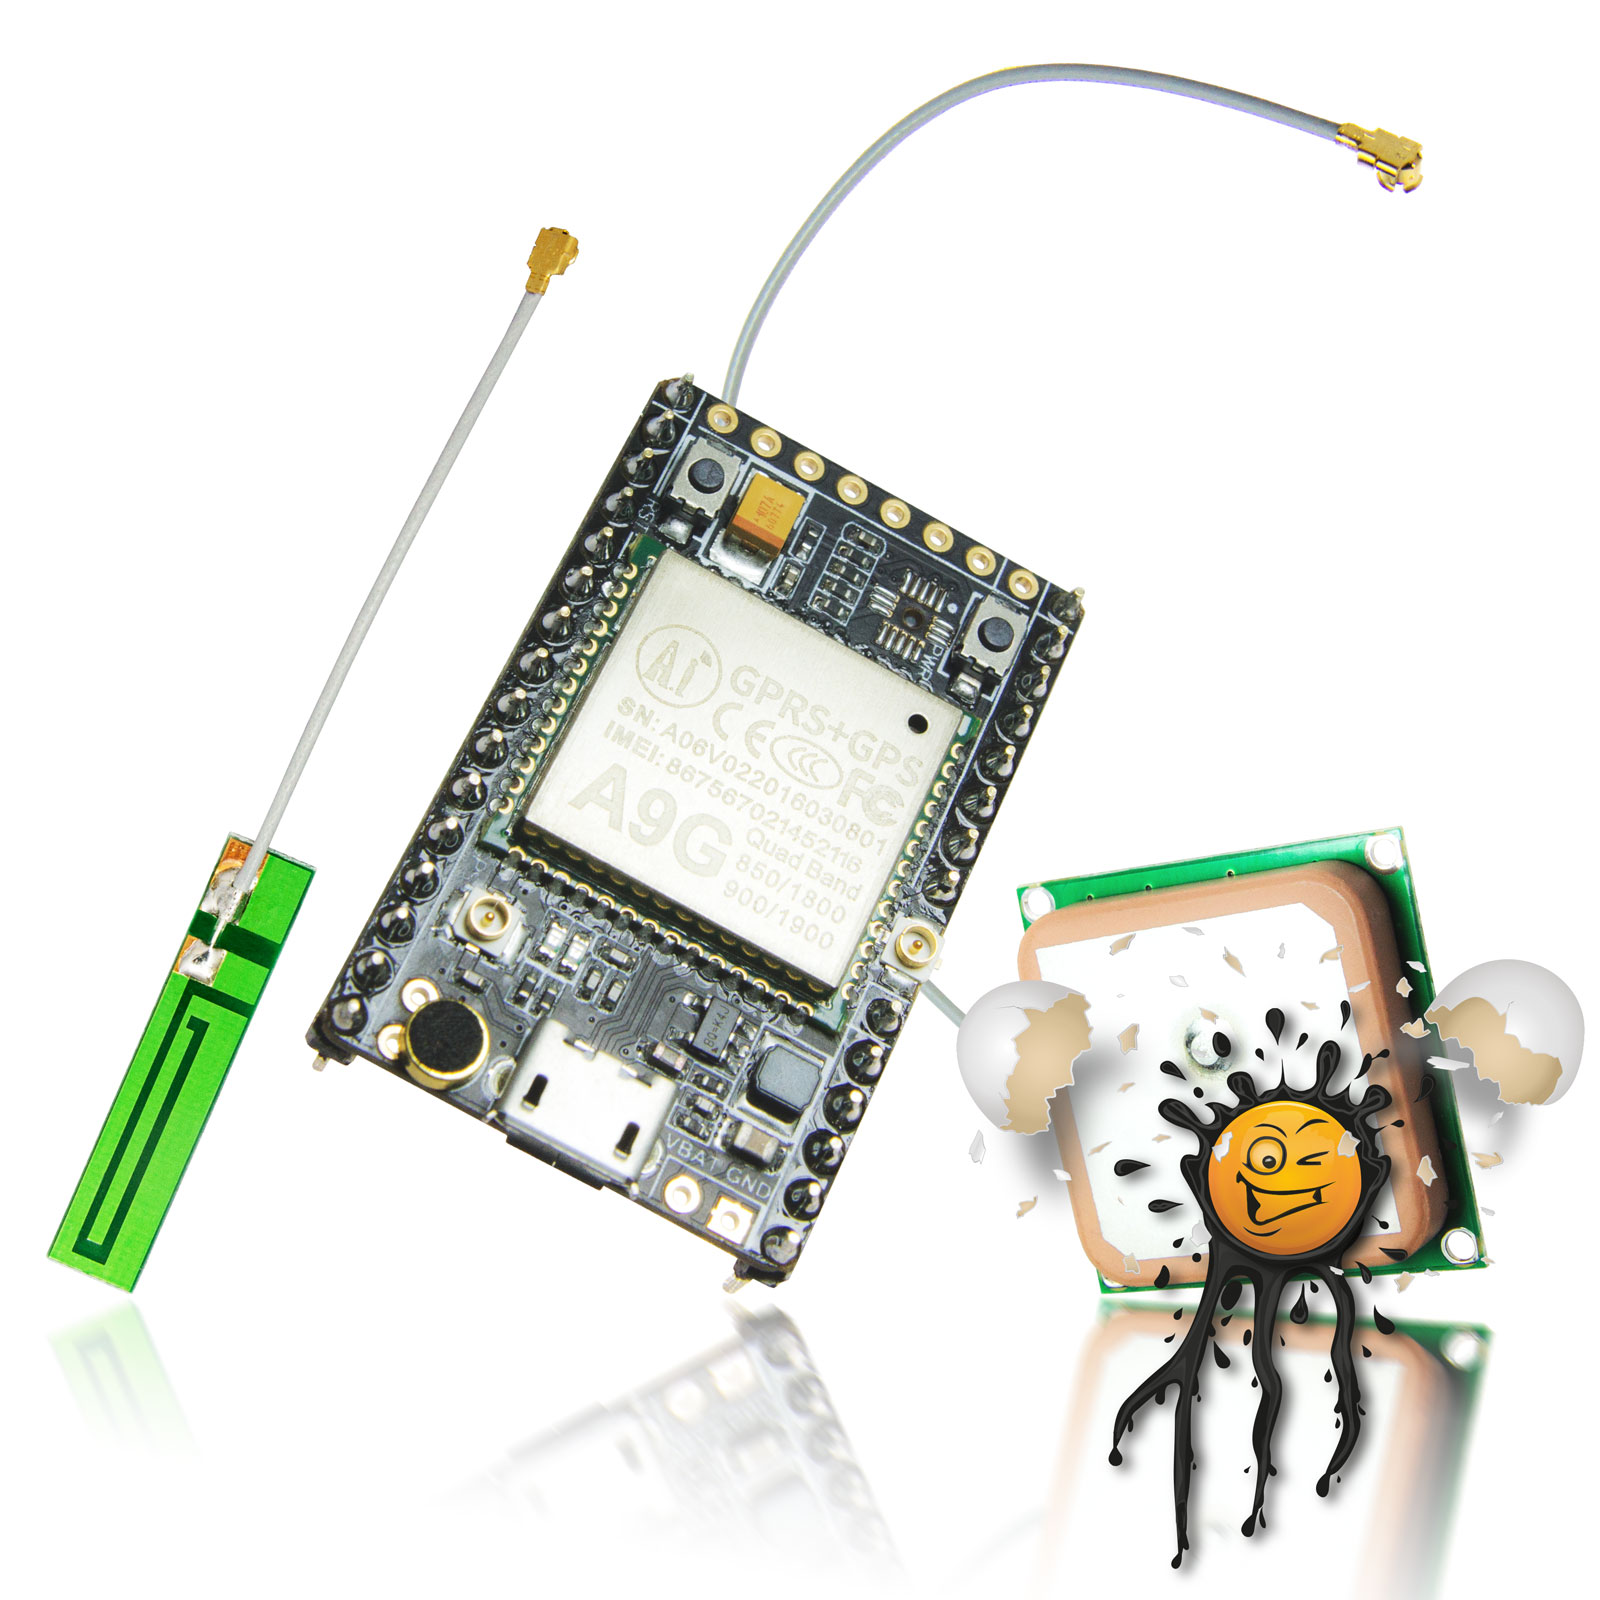 Ai Thinker Gps Bds Gprs A9g Board Iot Powered By Circuit Original Set Incl Dev And Antennas